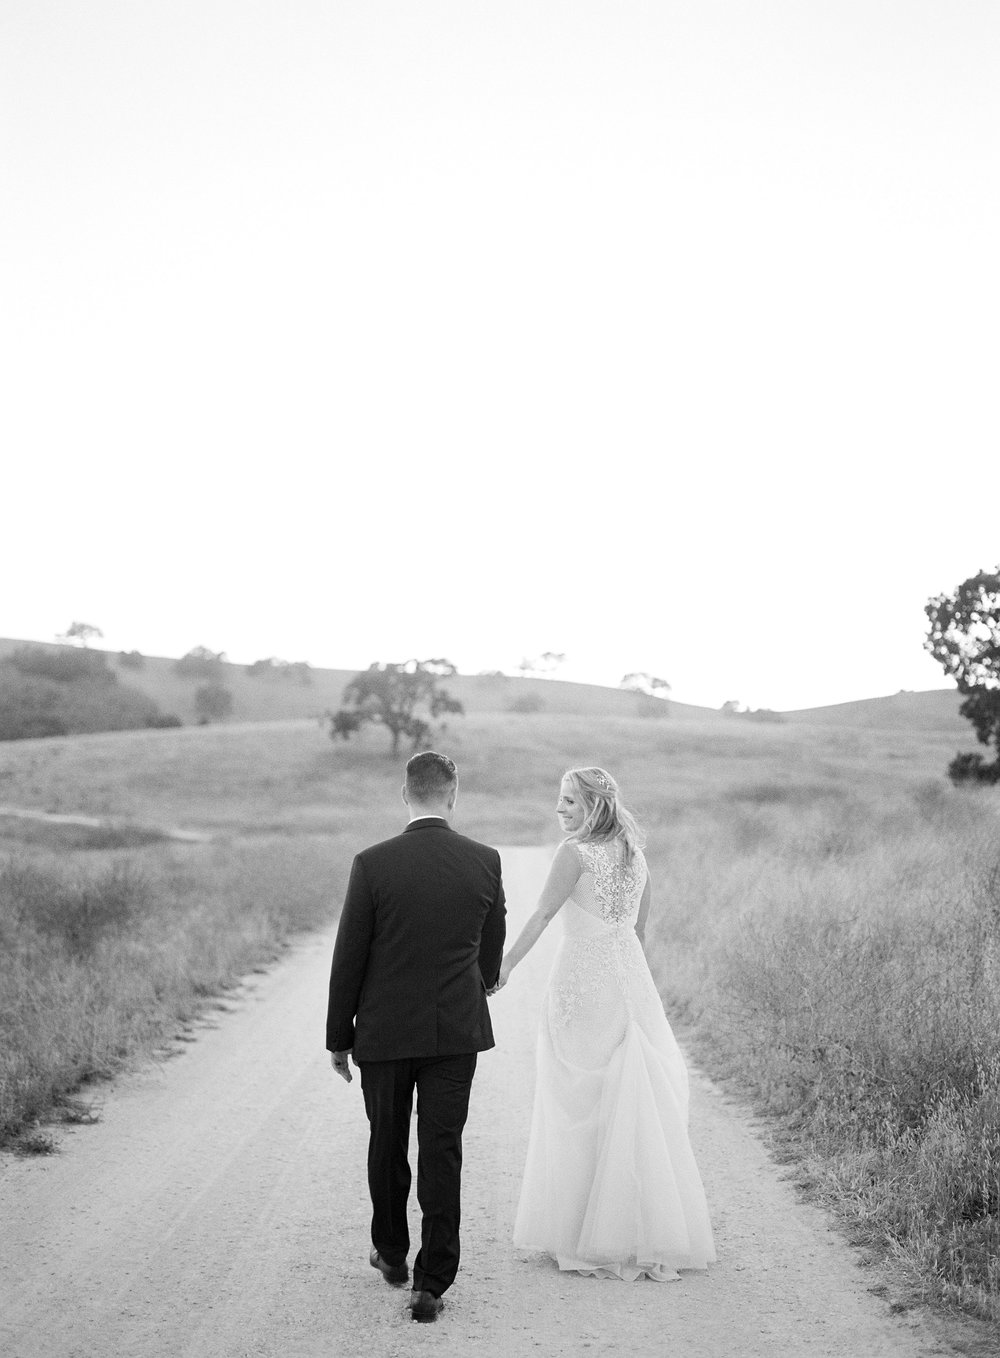 Kestrel Park Wedding, Santa Ynez, California